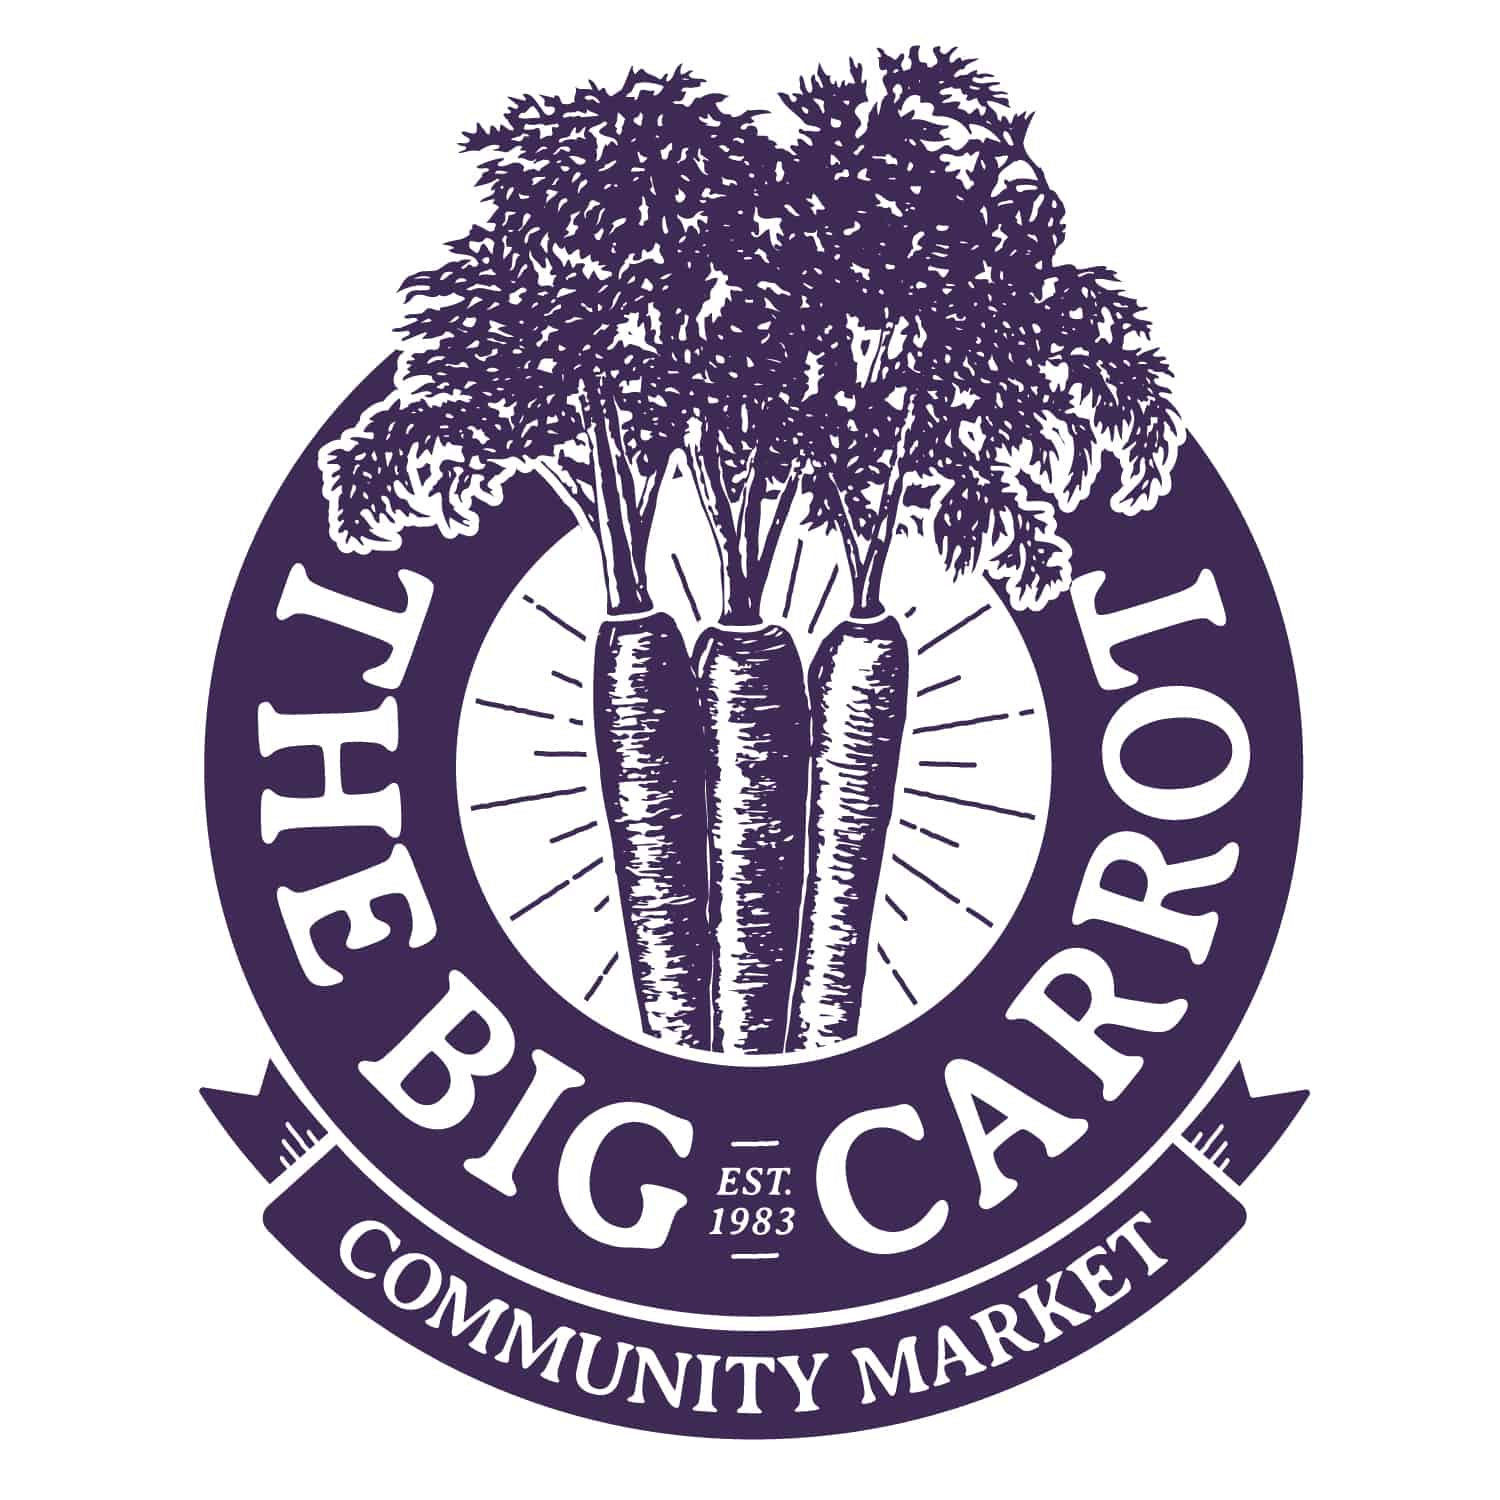 The Big Carrot logo